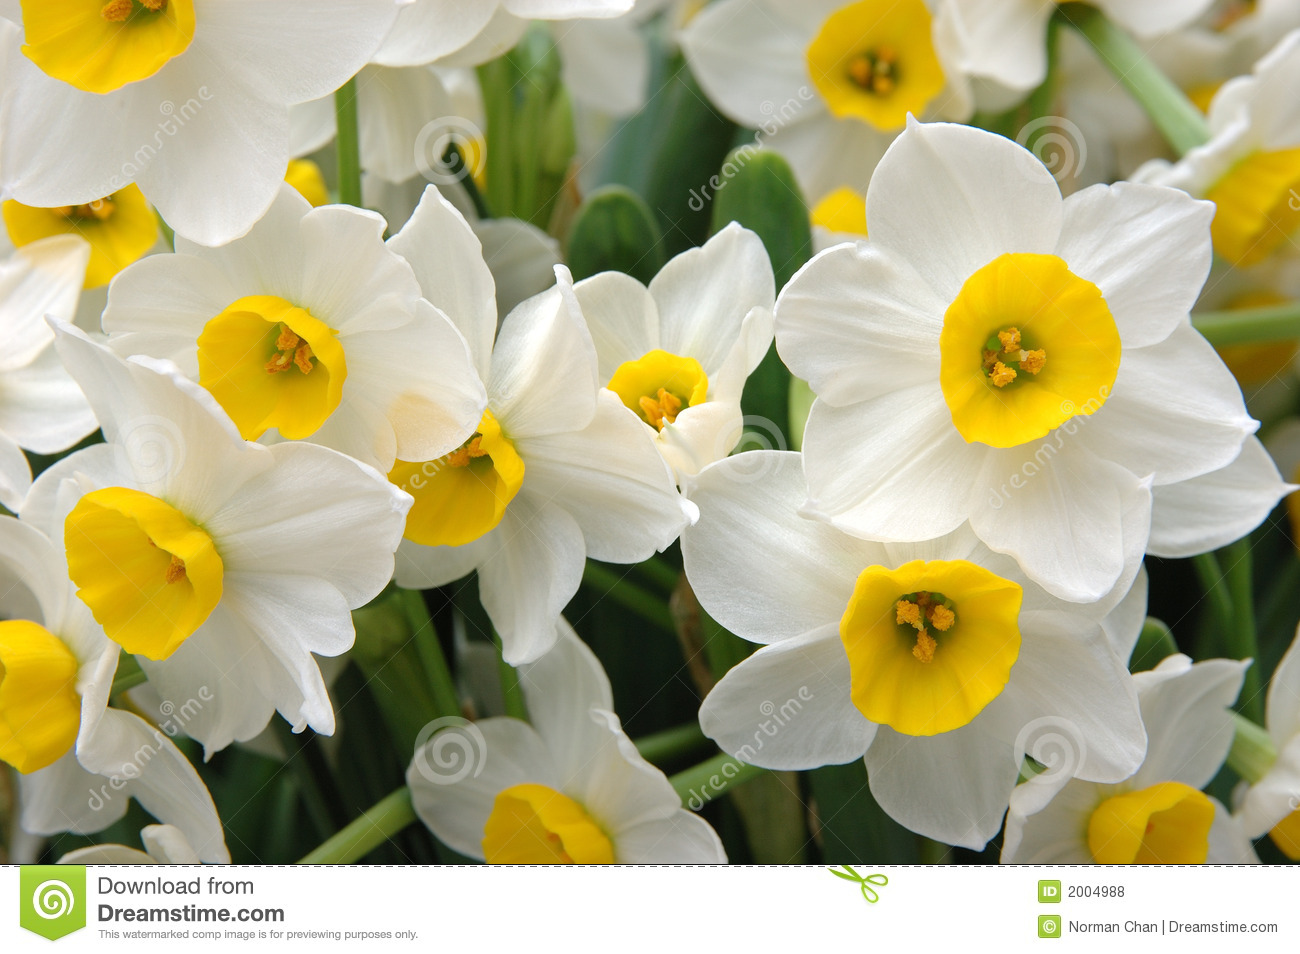 Google images daffodils png free stock White Daffodils Royalty Free Stock Photos - Image: 2004988 ... png free stock